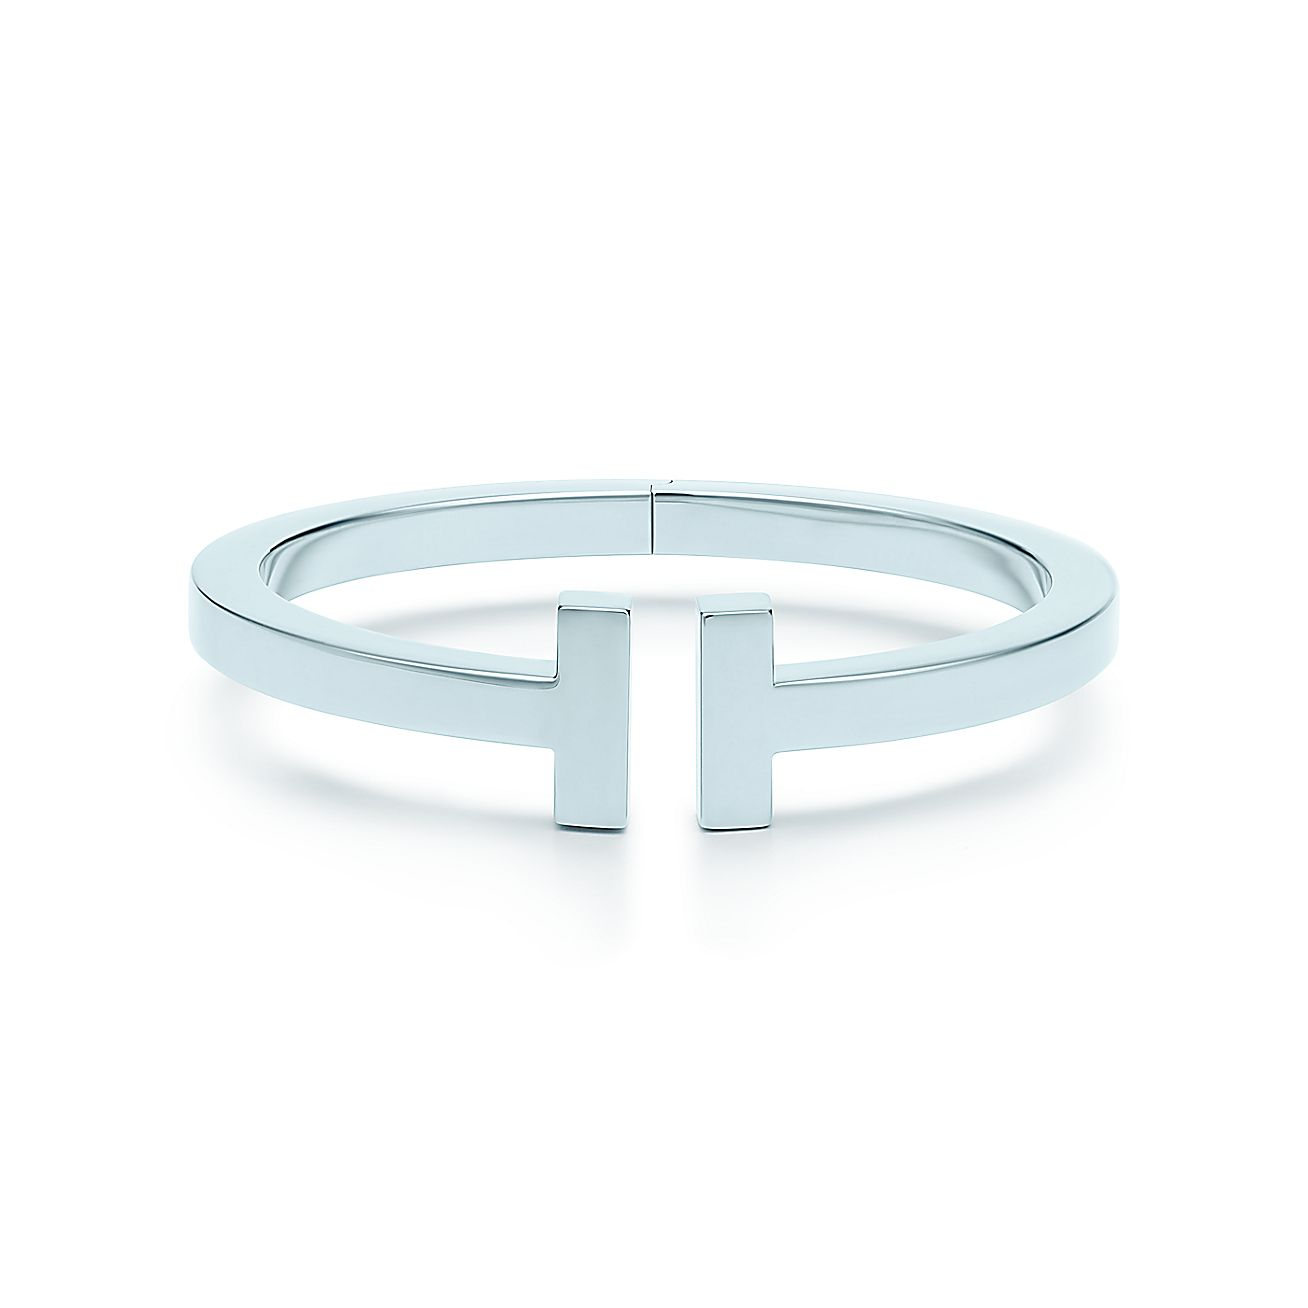 This is on my Wish List: Tiffany T square bracelet in sterling silver, large. | Tiffany & Co.